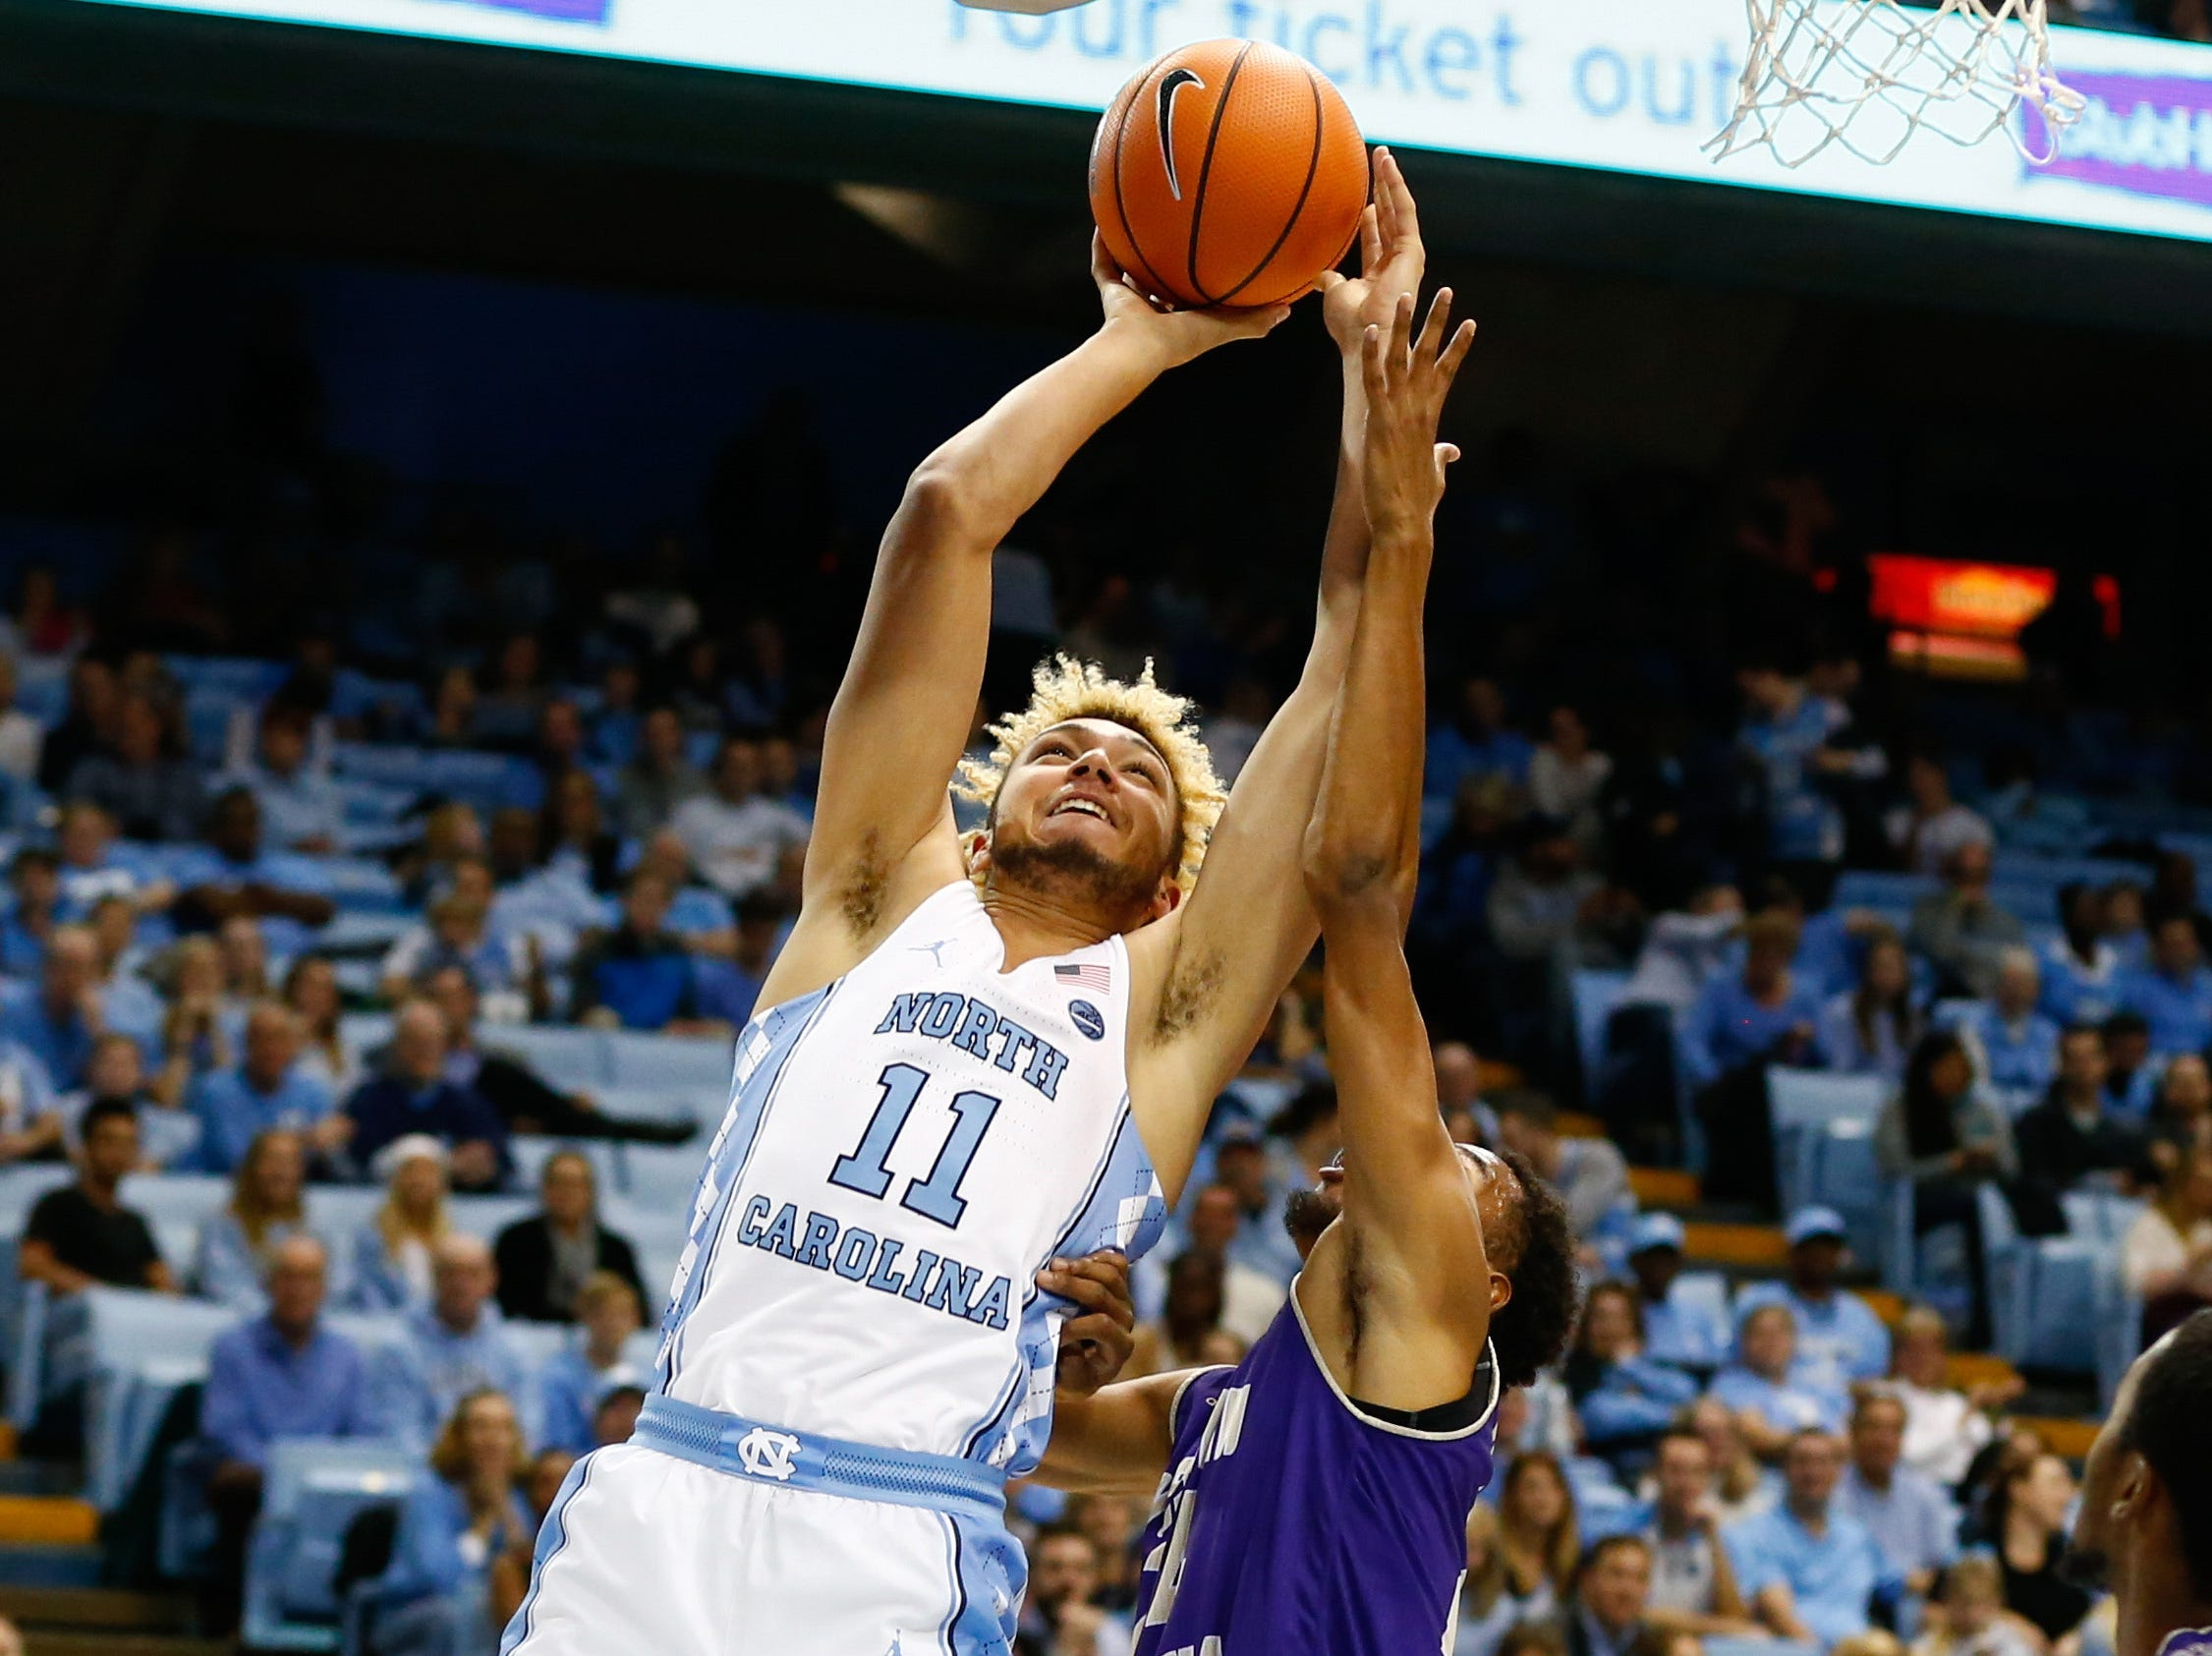 Dec 6, 2017; Chapel Hill, NC, USA; North Carolina Tar Heels forward Shea Rush (11) shoots the ball in the second half against the Western Carolina Catamounts at Dean E. Smith Center. Mandatory Credit: Jeremy Brevard-USA TODAY Sports